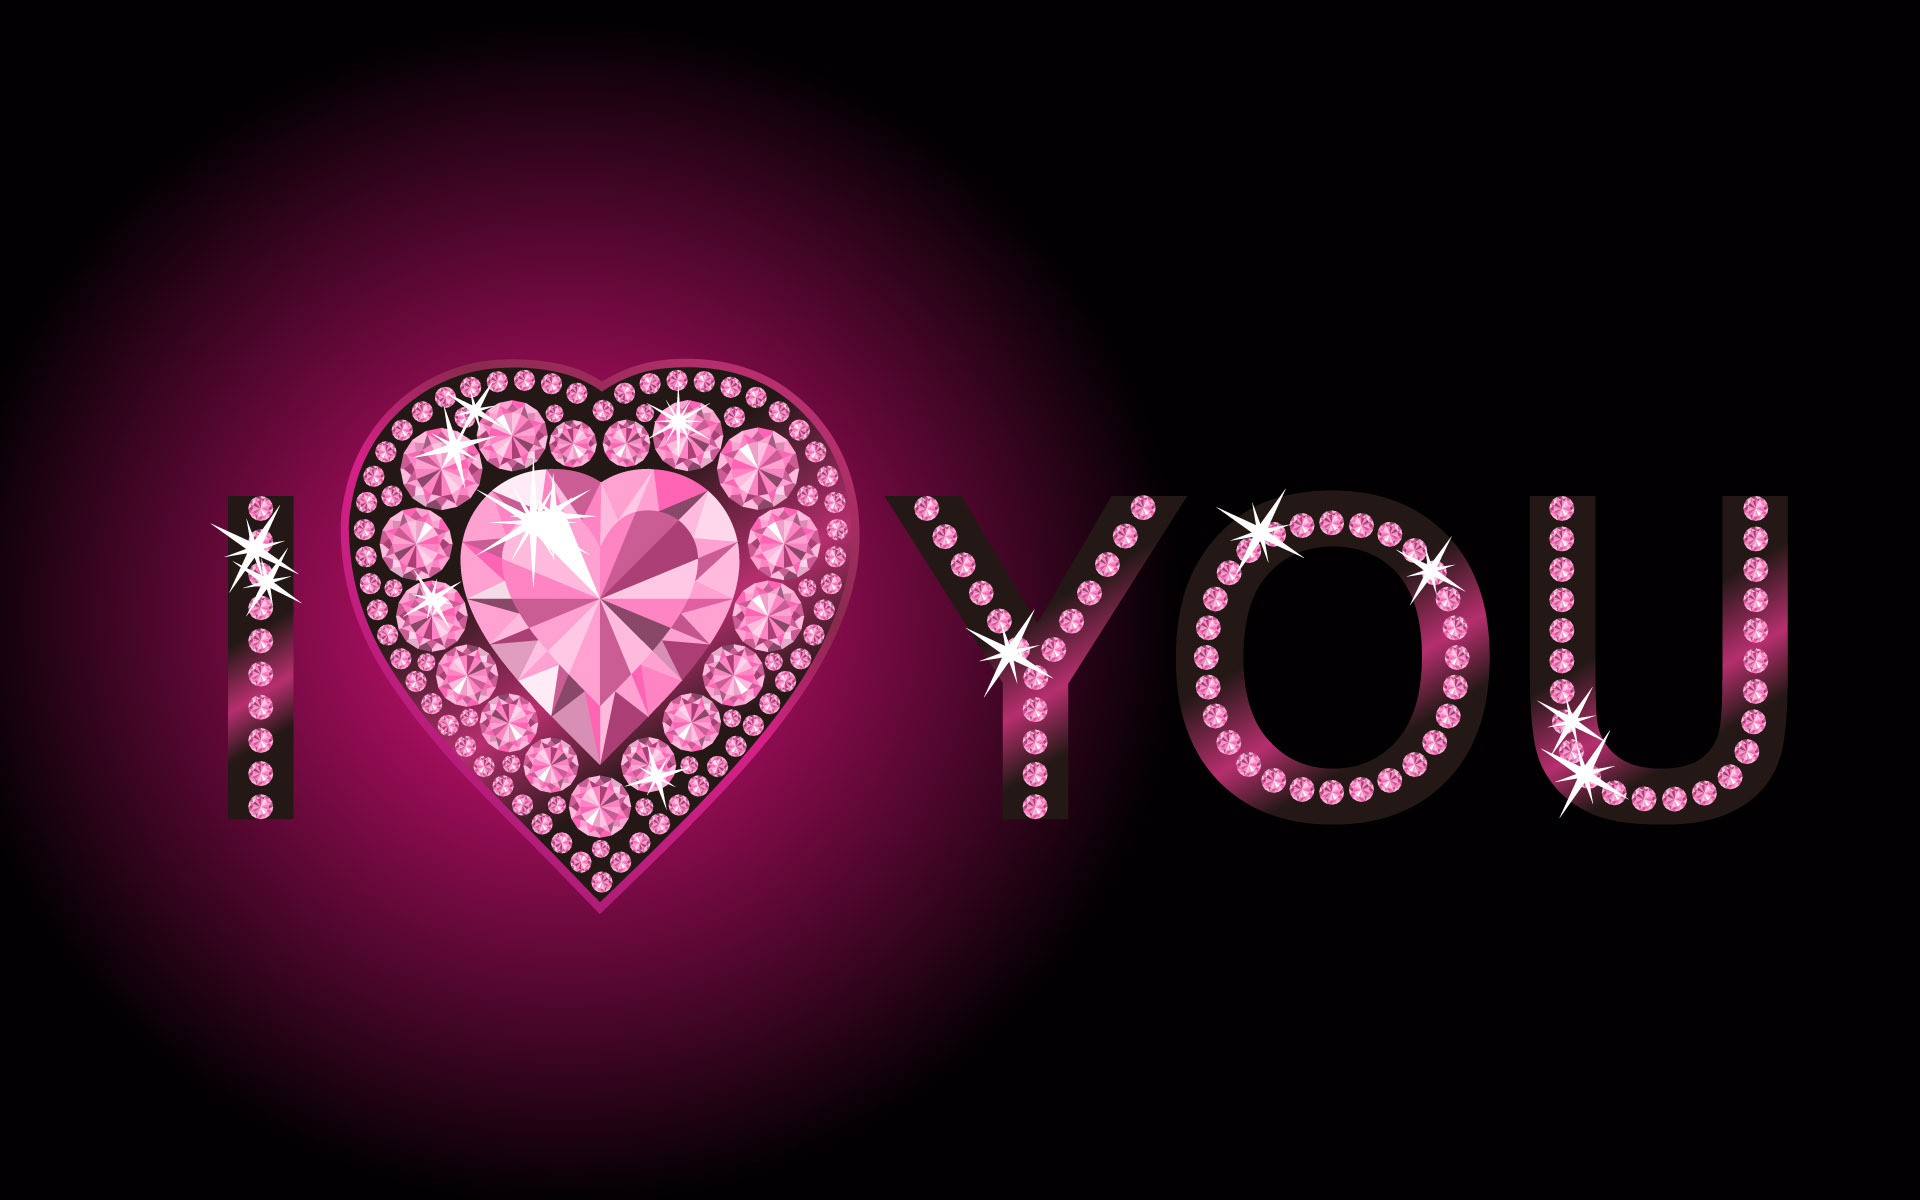 Love Wallpaper Pc Desktop : I Love You Desktop Wallpaper - Wallpaper, High Definition, High Quality, Widescreen